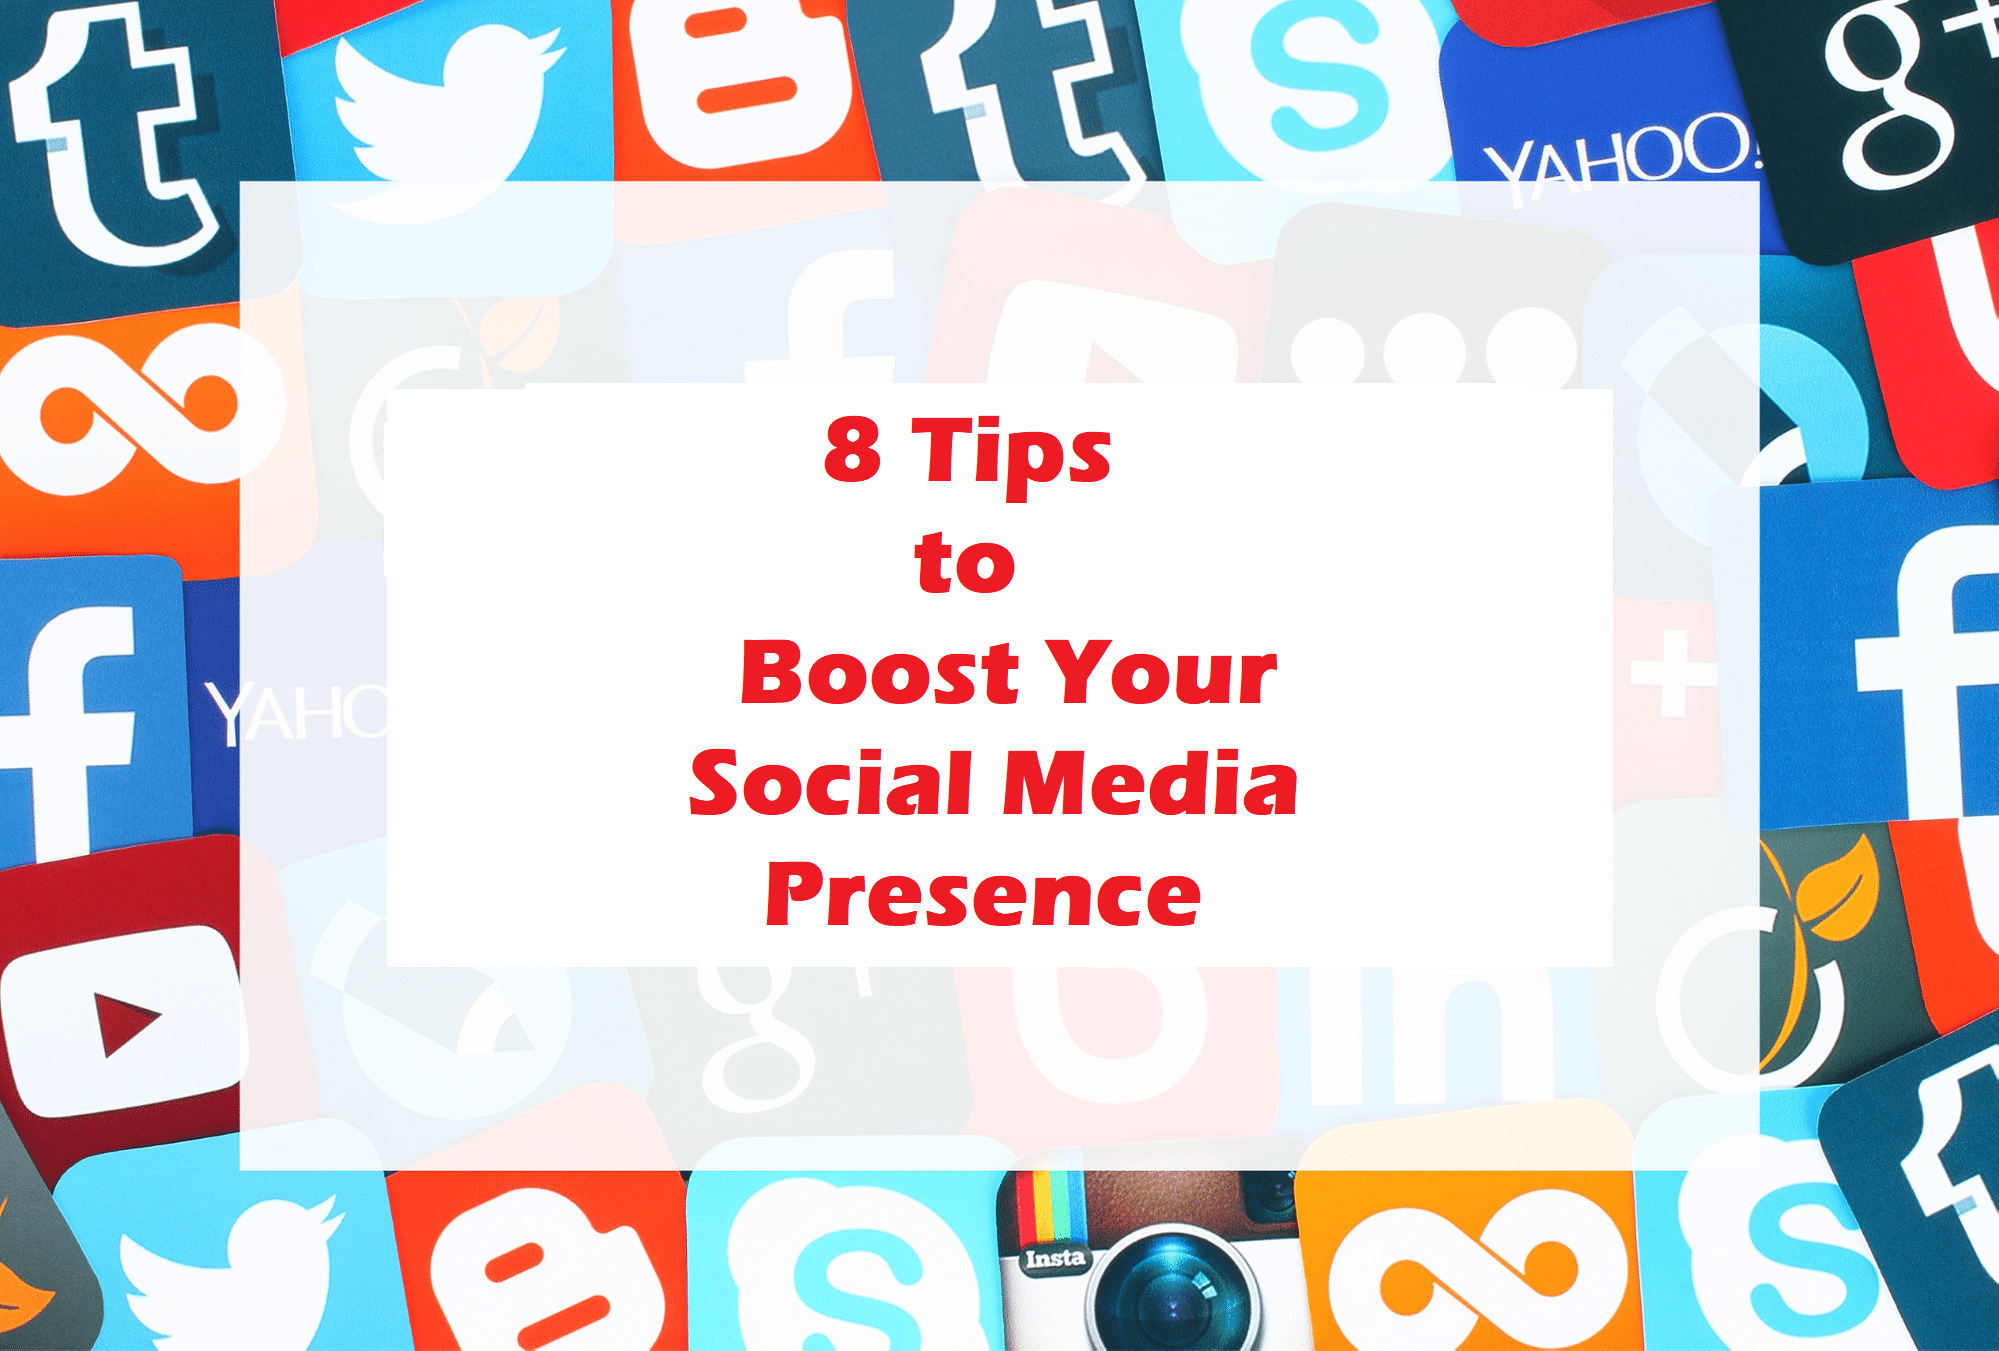 8 Tips to Boost Your Social Media Presence